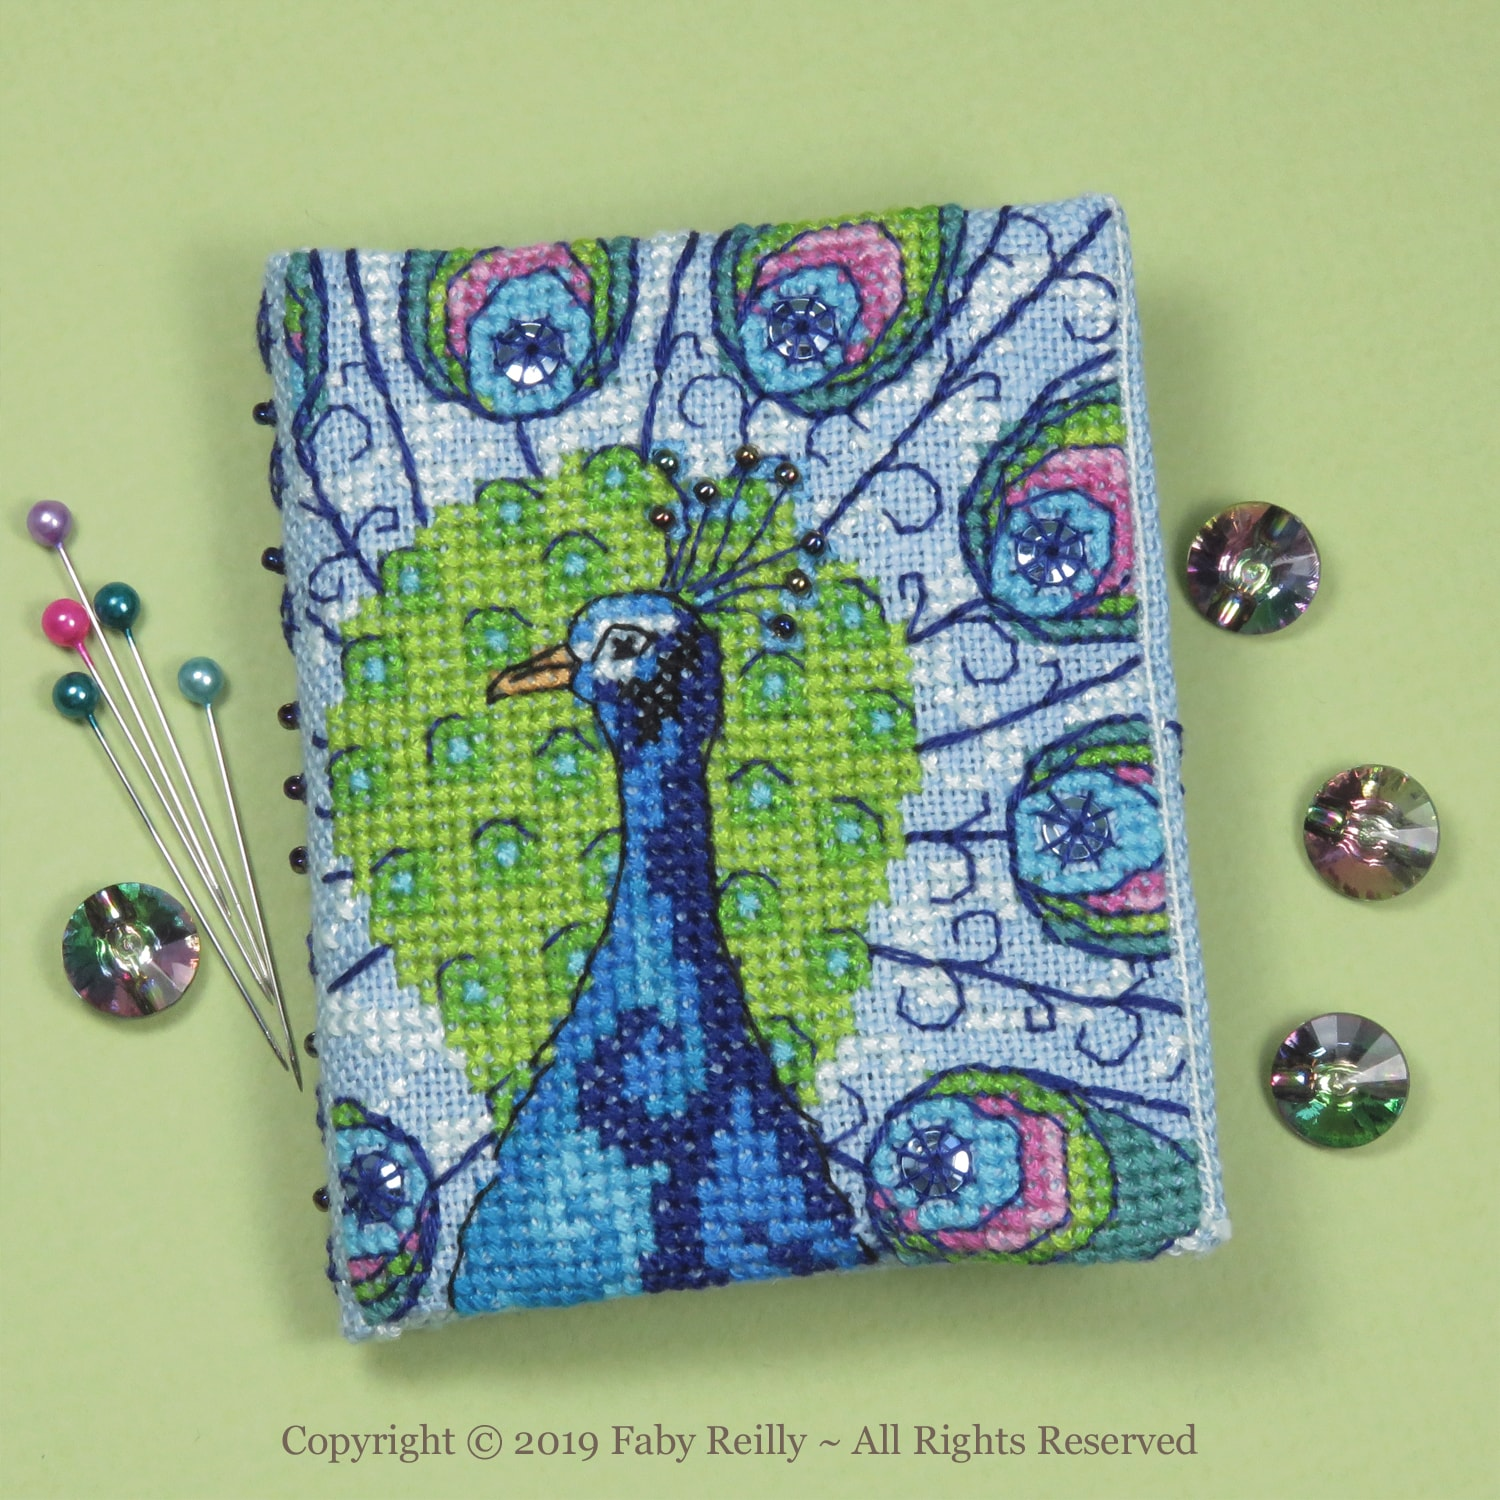 Peacock Needlebook – Faby Reilly Designs